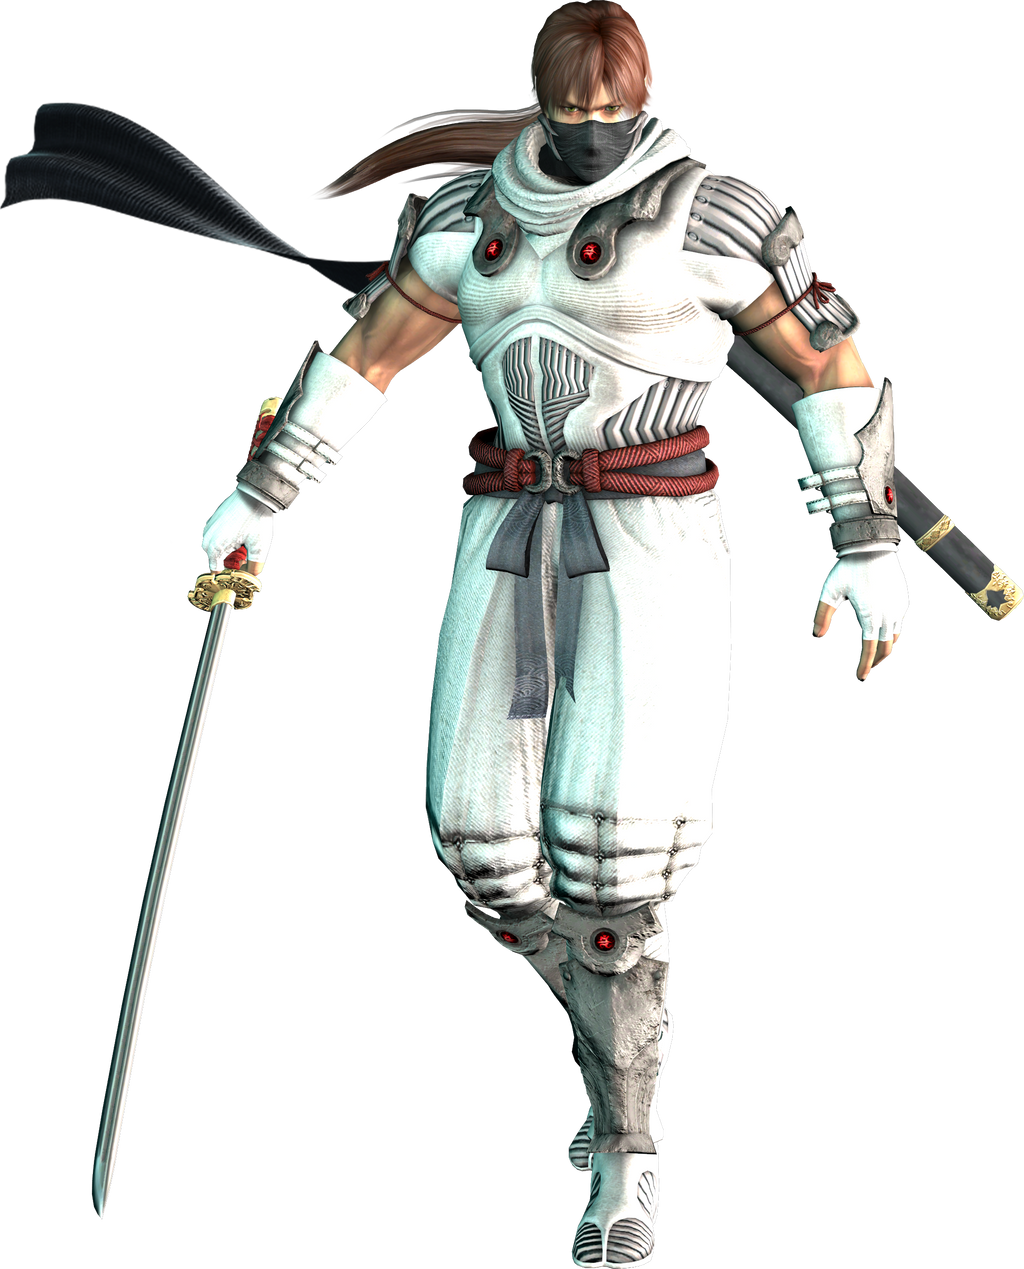 ryu hayabusa costumes wallpaper-#17